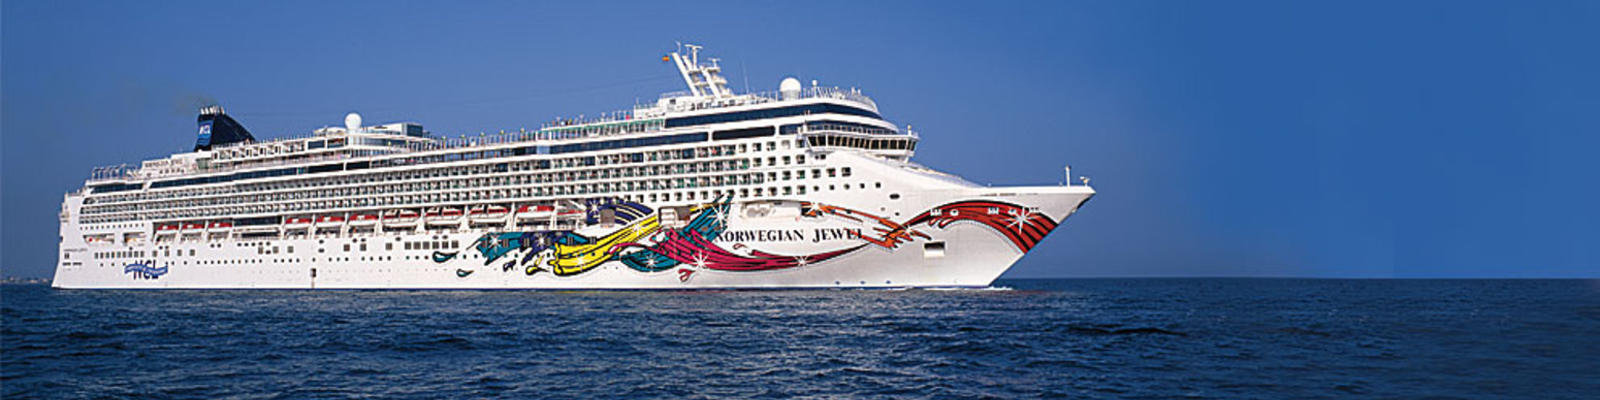 The Norwegian Jewel cruise ship at sea.